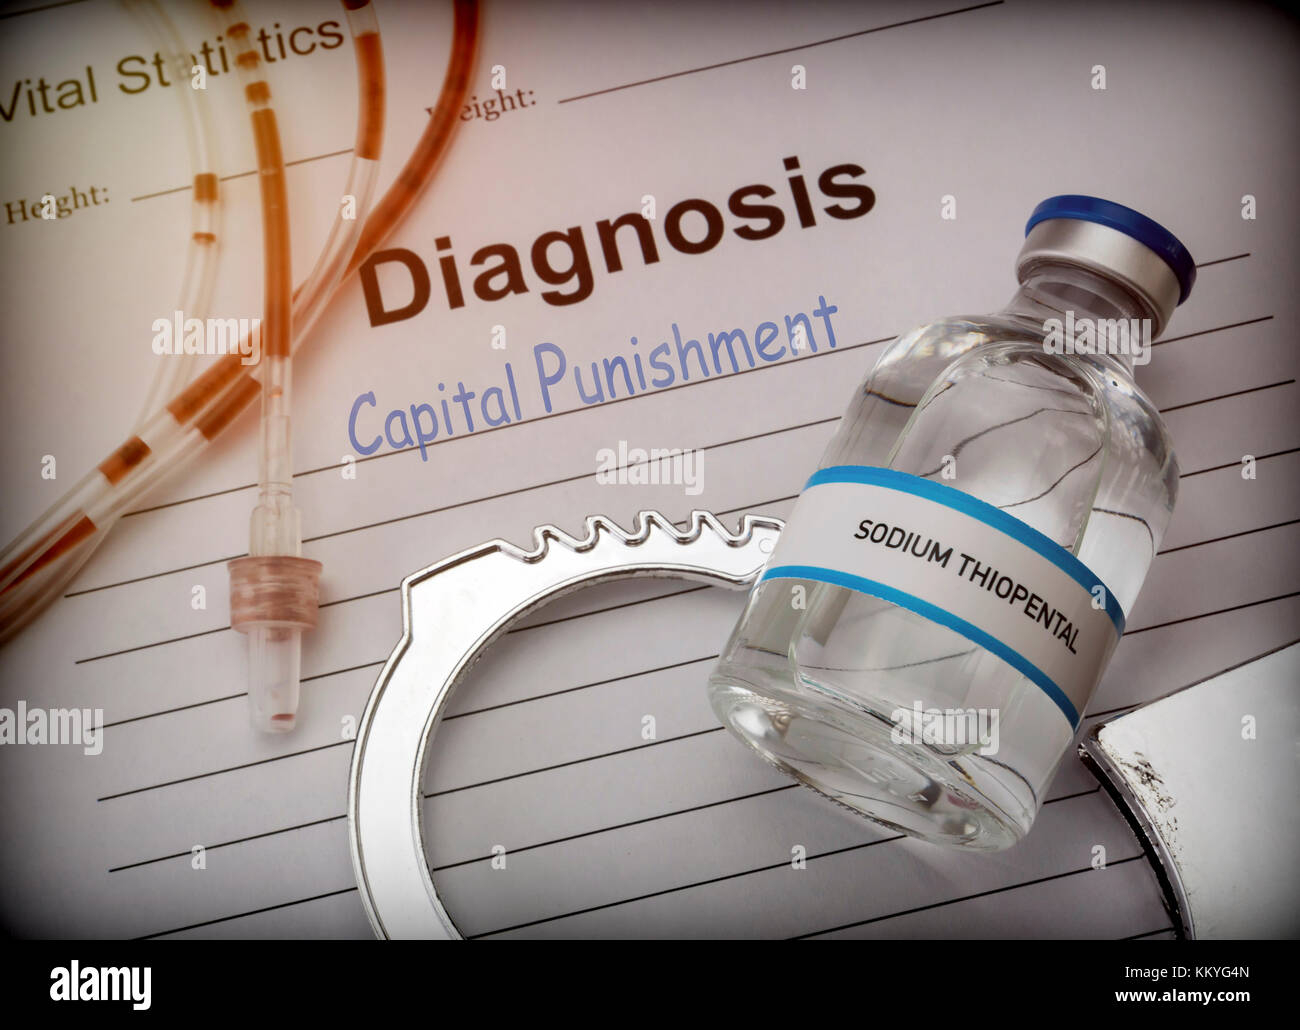 Form of diagnosis and resolution of capital punishment, injection of lethal sodium thiopental anesthesia, conceptual - Stock Image